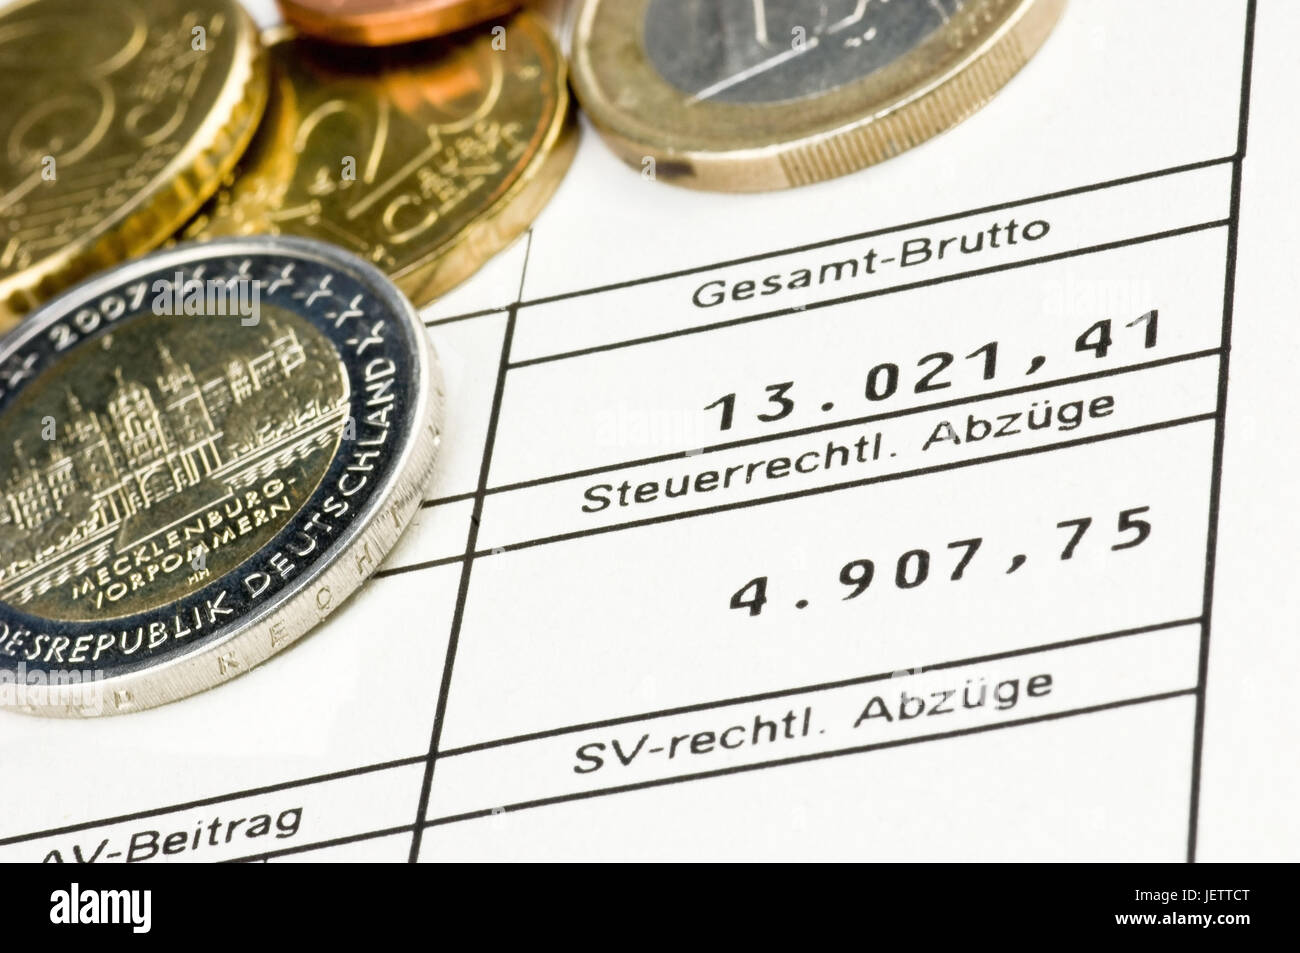 Pay slip form with euro-coins, Lohnabrechnungs-Formular mit Euro-Muenzen Stock Photo